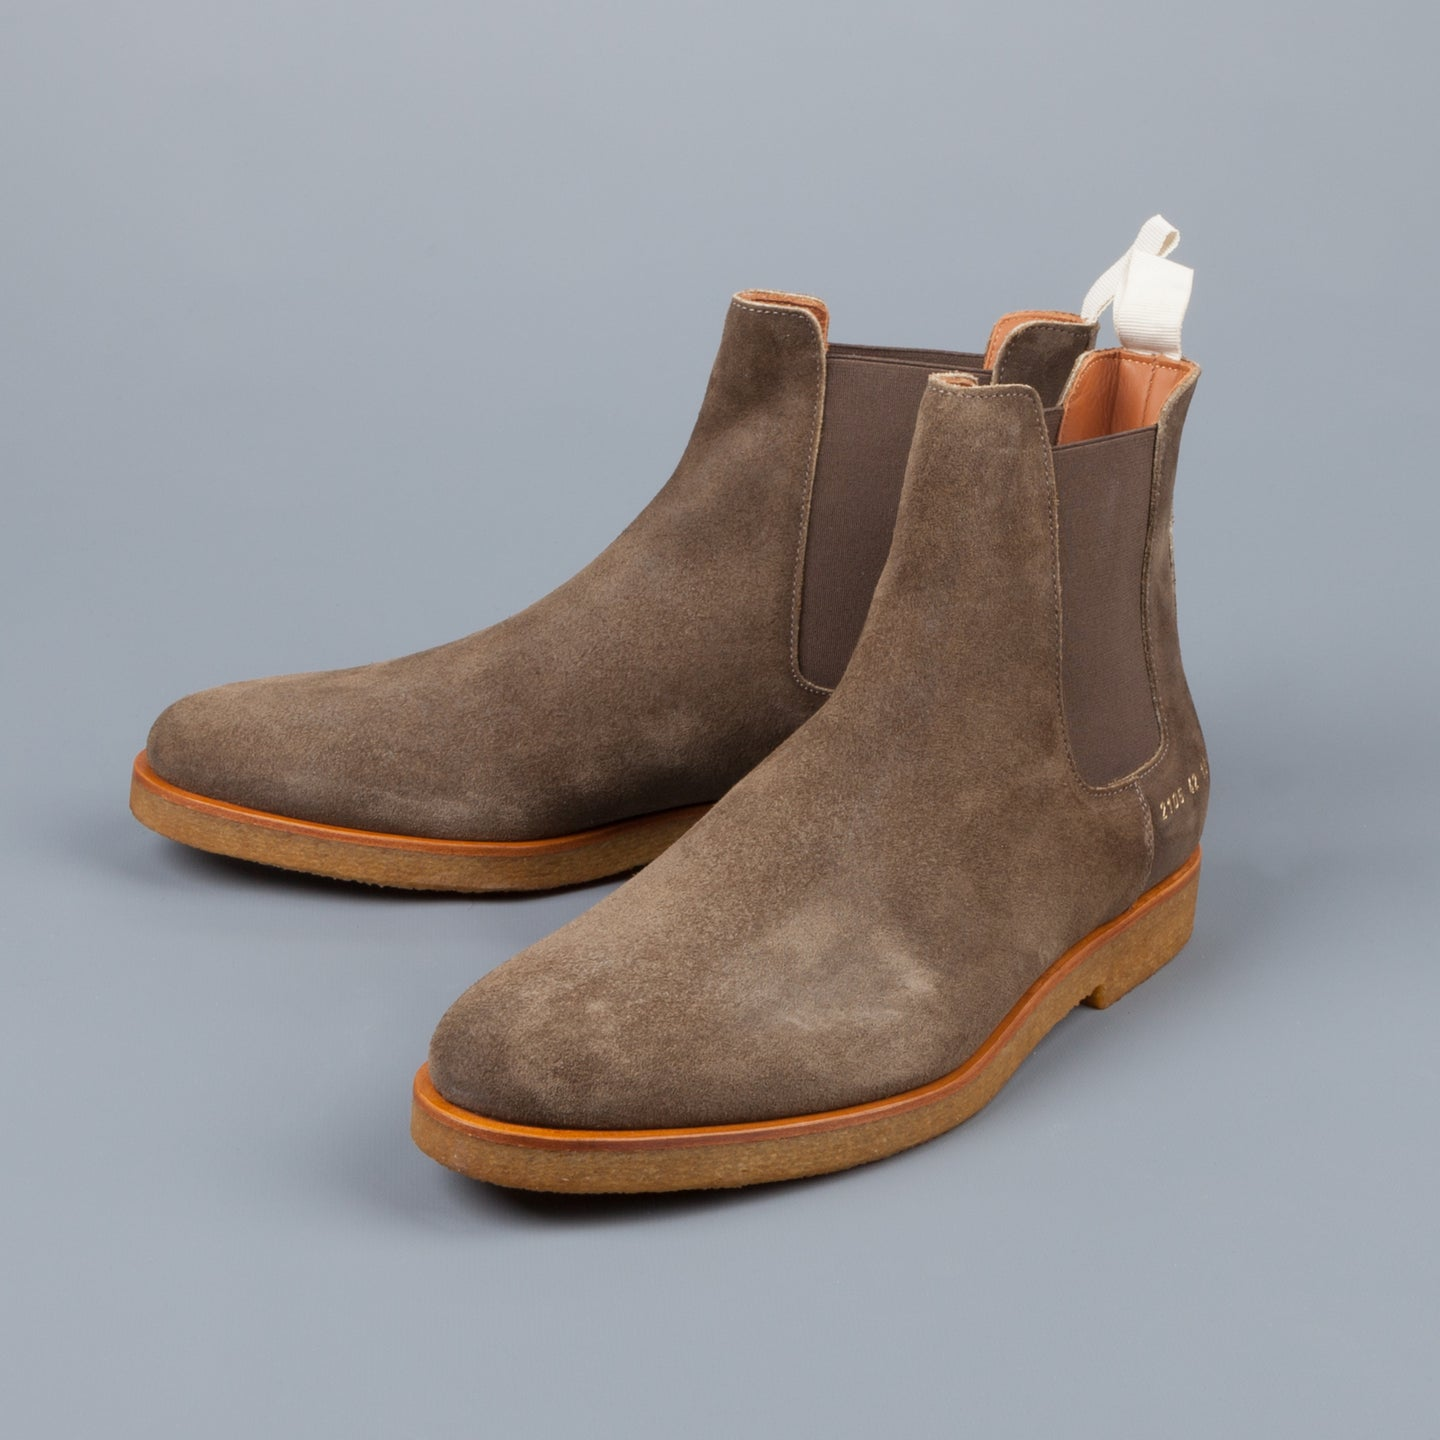 Common Projects Chelsea Boot in Waxed Suede Olive